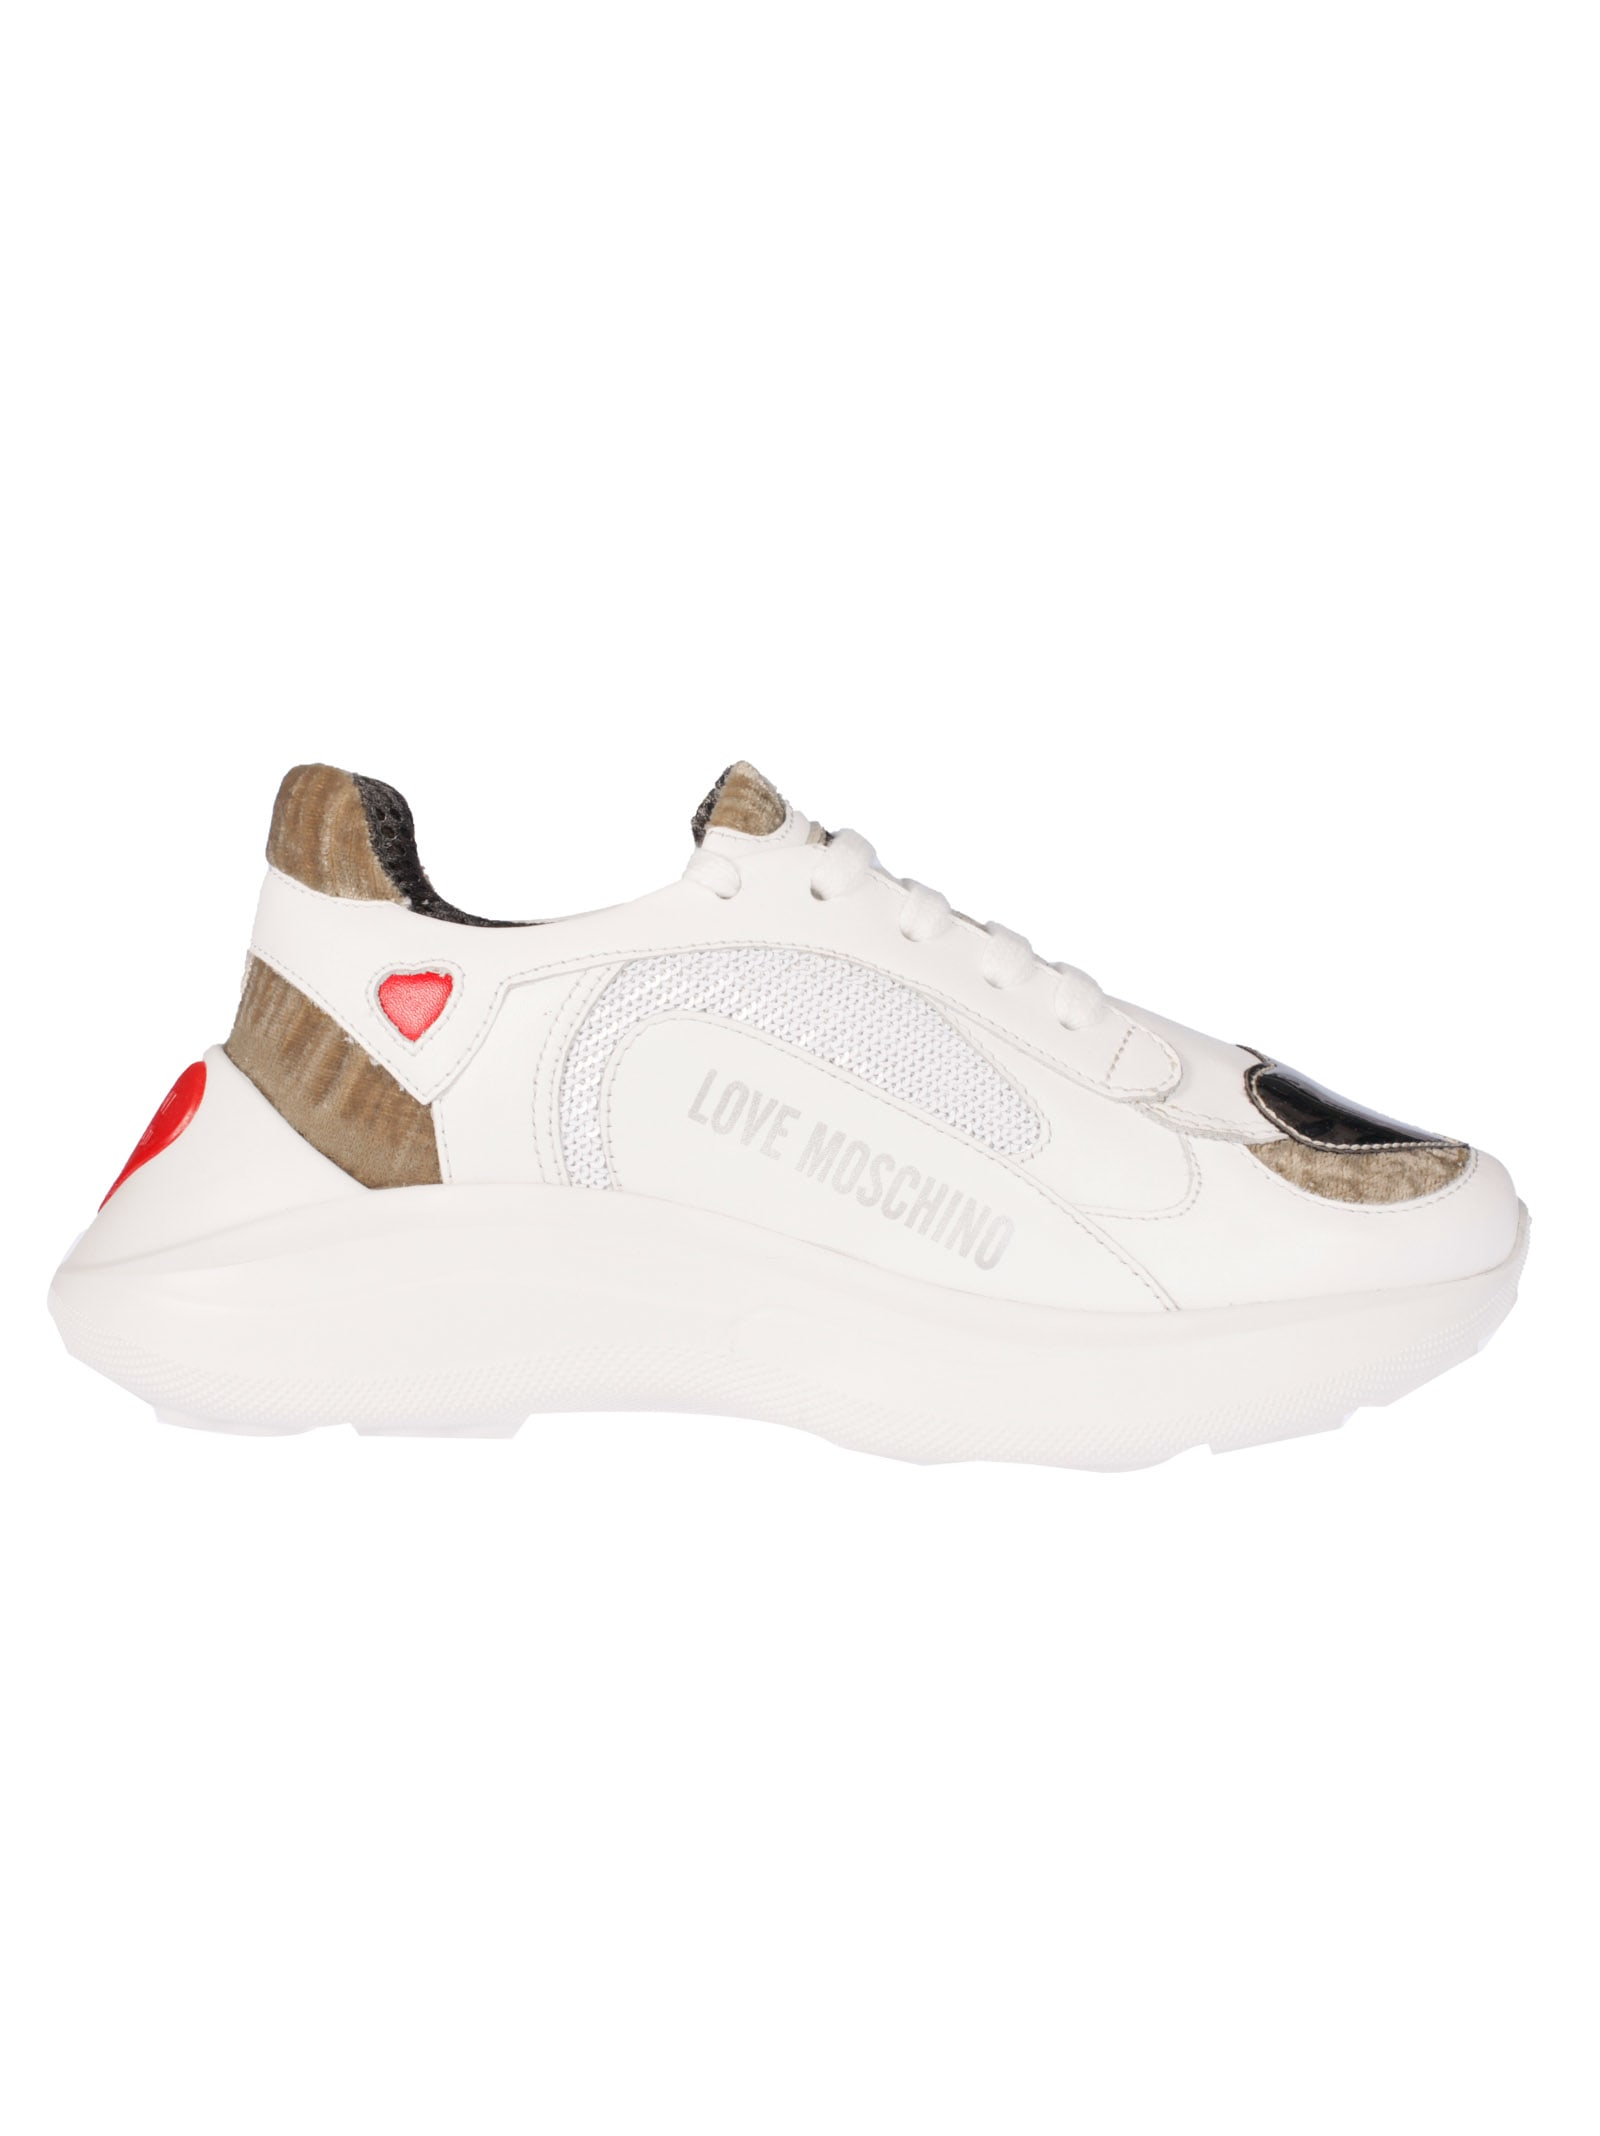 moschino trainers sale off 55% - www